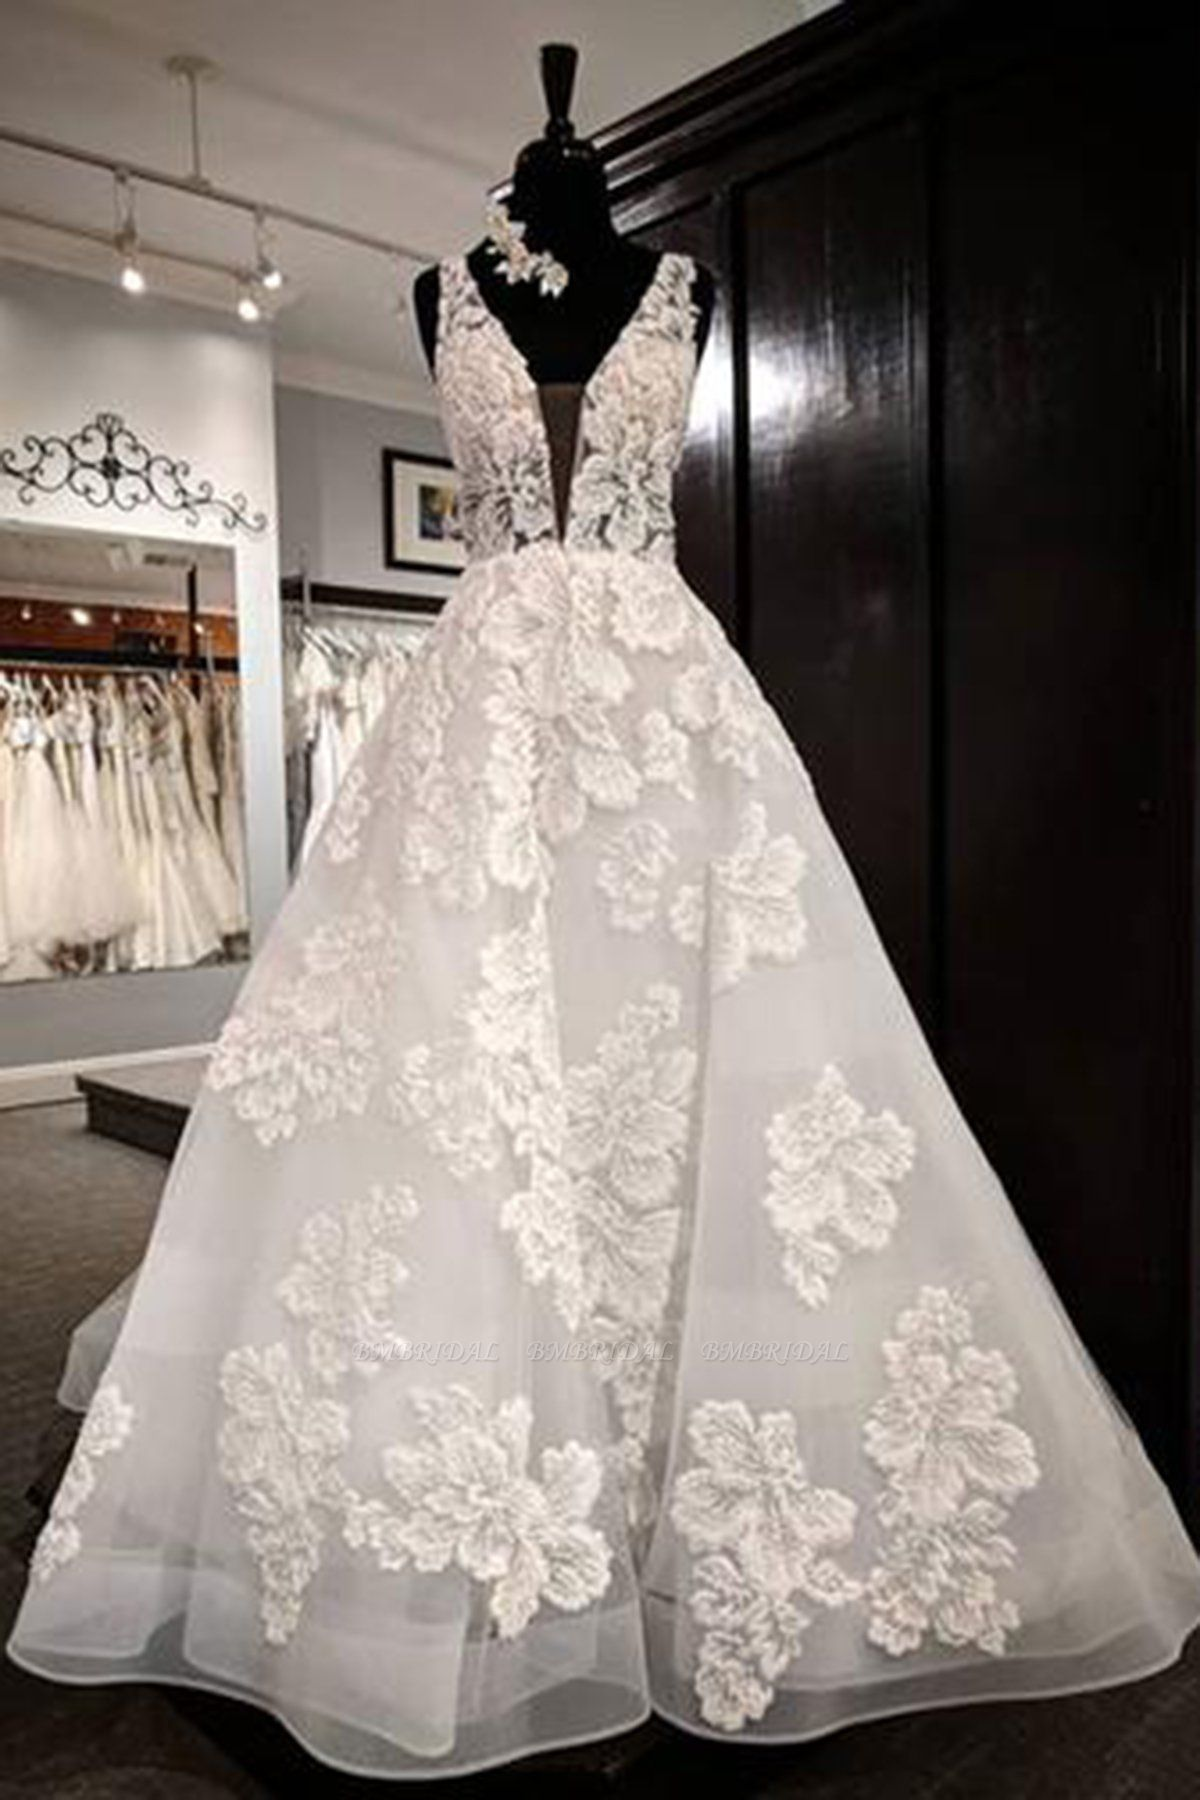 BMbridal Glamorous White Tulle V-Neck Flower Long Wedding Dress Lace Applique Bridal Gowns On Sale